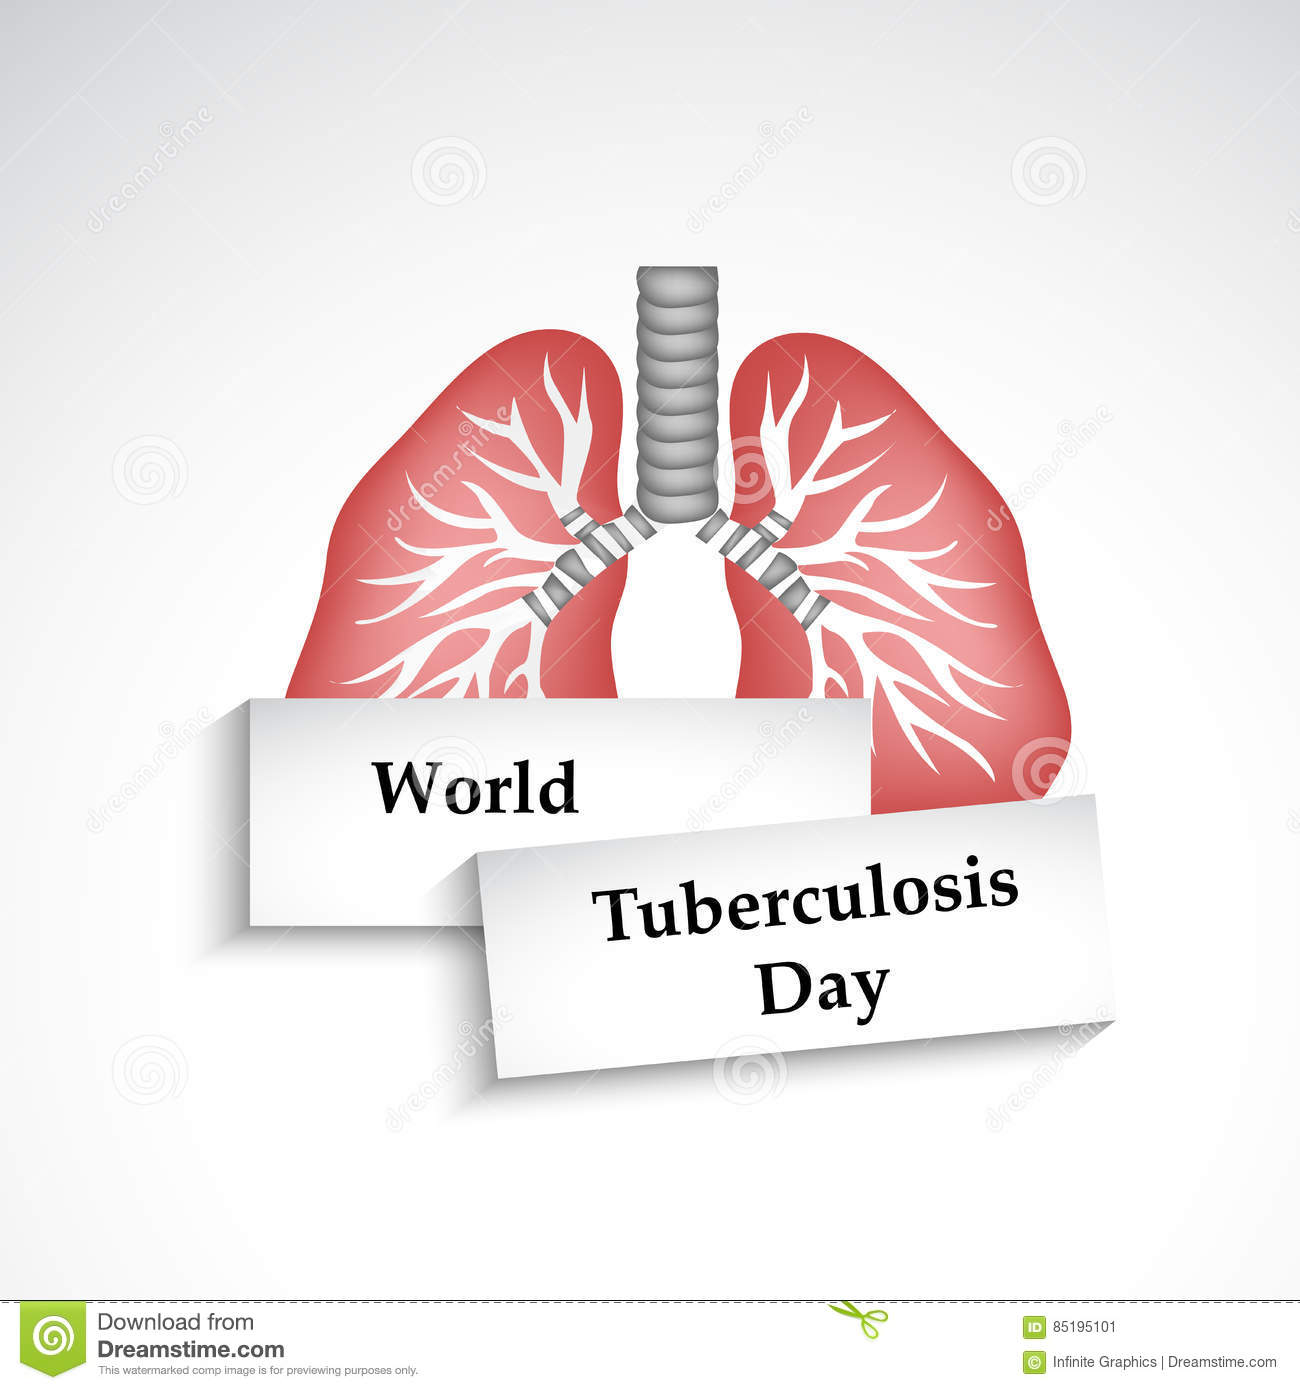 Tuberculosis Day Background Stock Vector Illustration Of Part